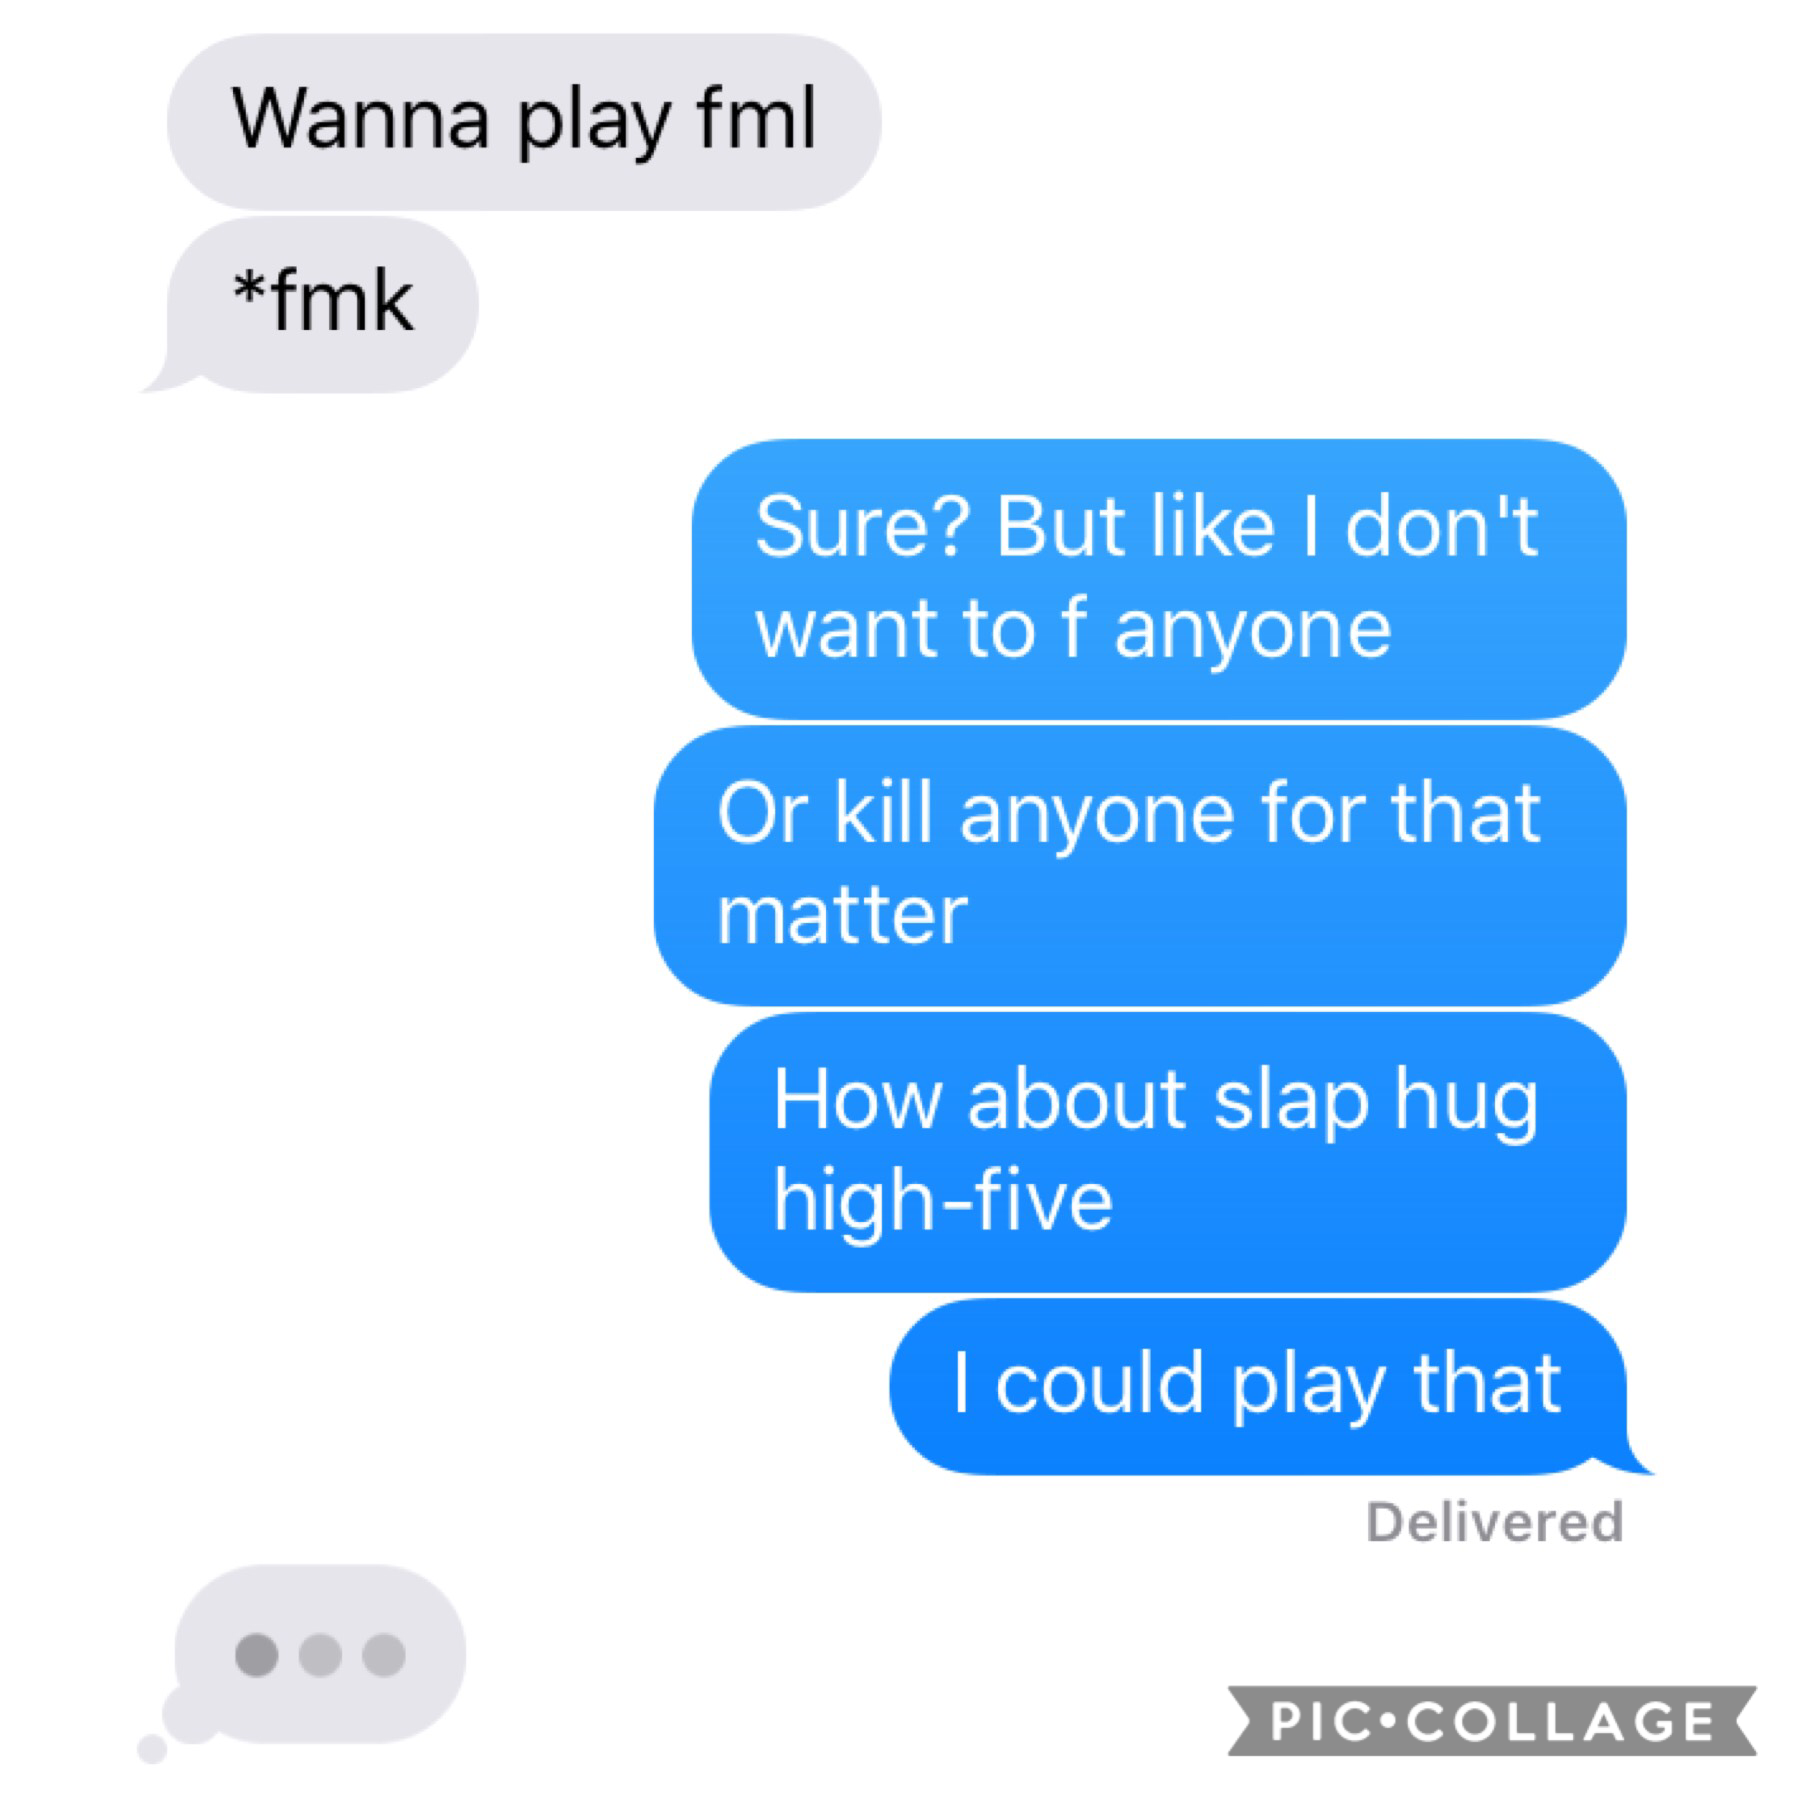 I'm too soft to play fmk (and probably ace tbh)